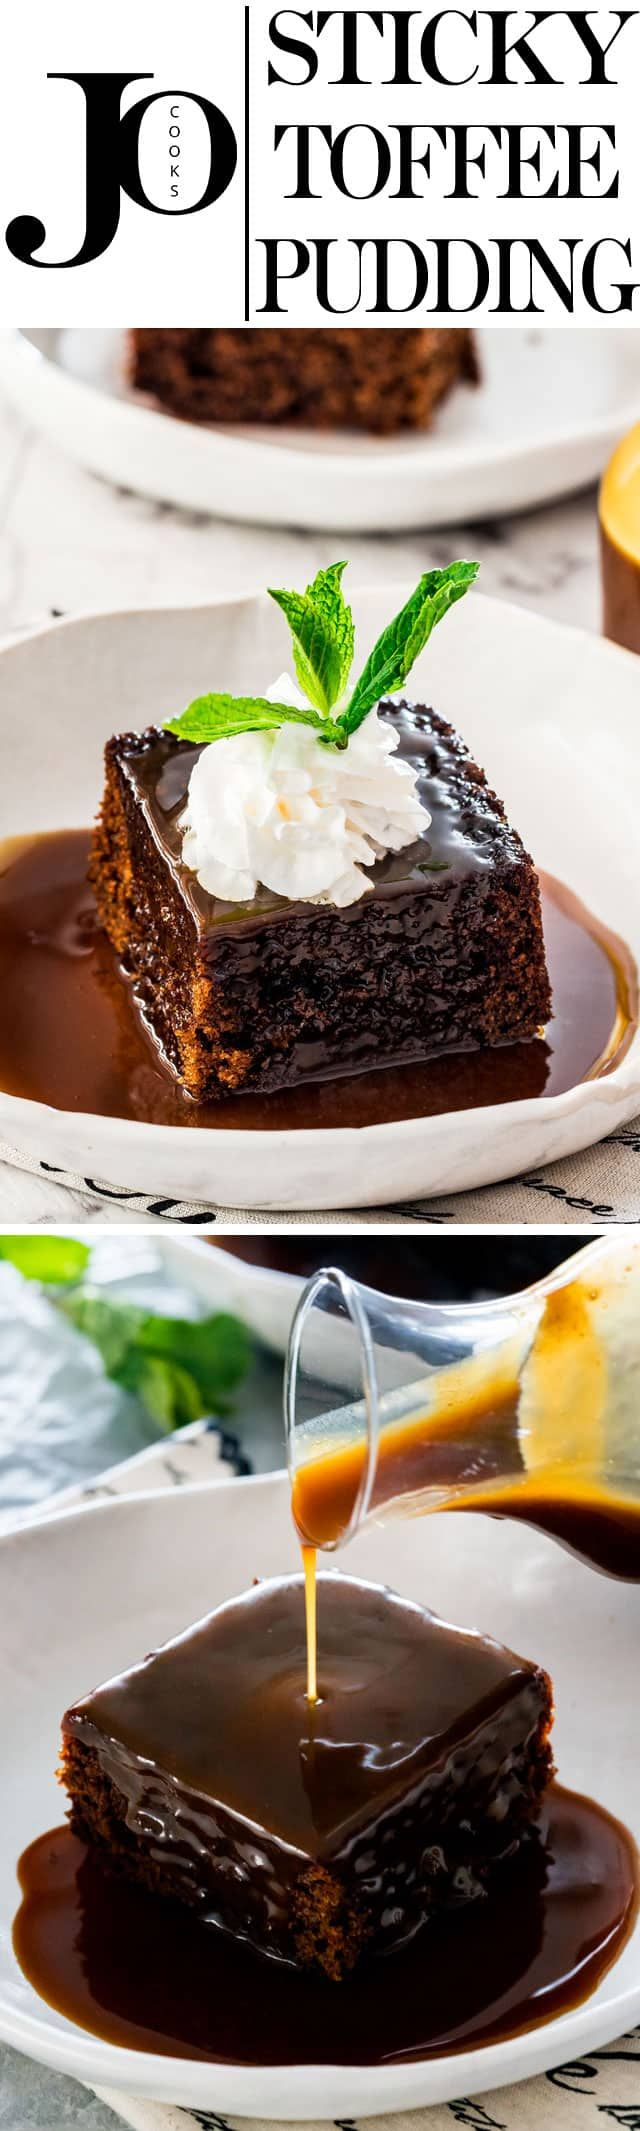 This Sticky Toffee Pudding is super moist and delicious, drenched in a dark, rich and sticky toffee sauce. A classic British dessert that's the ultimate comforting treat and perfect for any occasion. #stickytoffeepudding via @jocooks